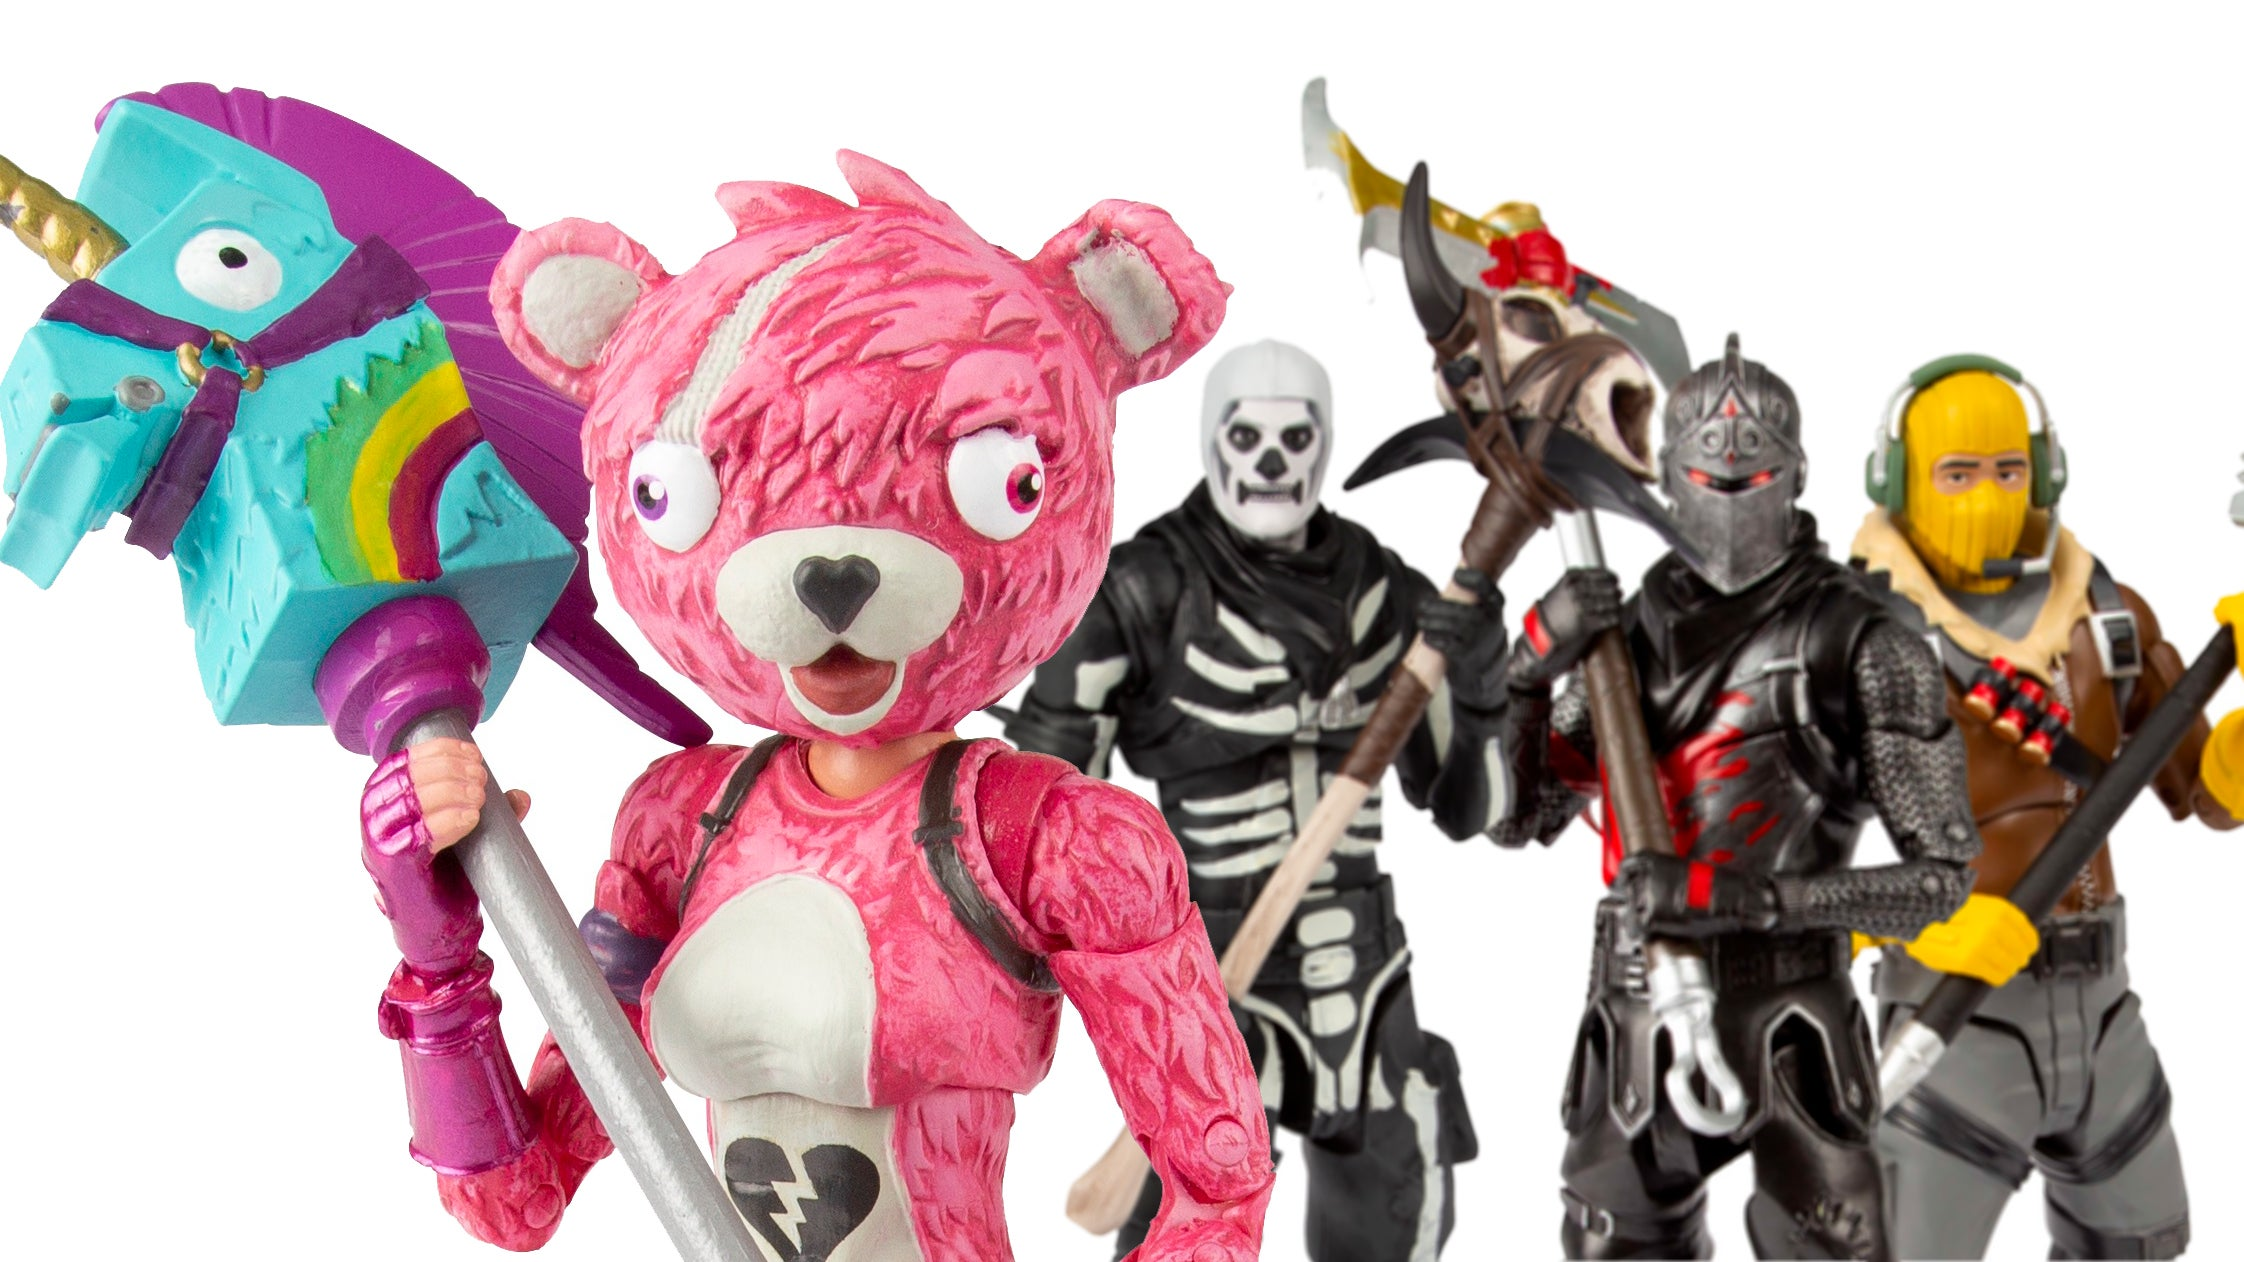 Only One Of These Fortnite Action Figures Is Super Cuddly